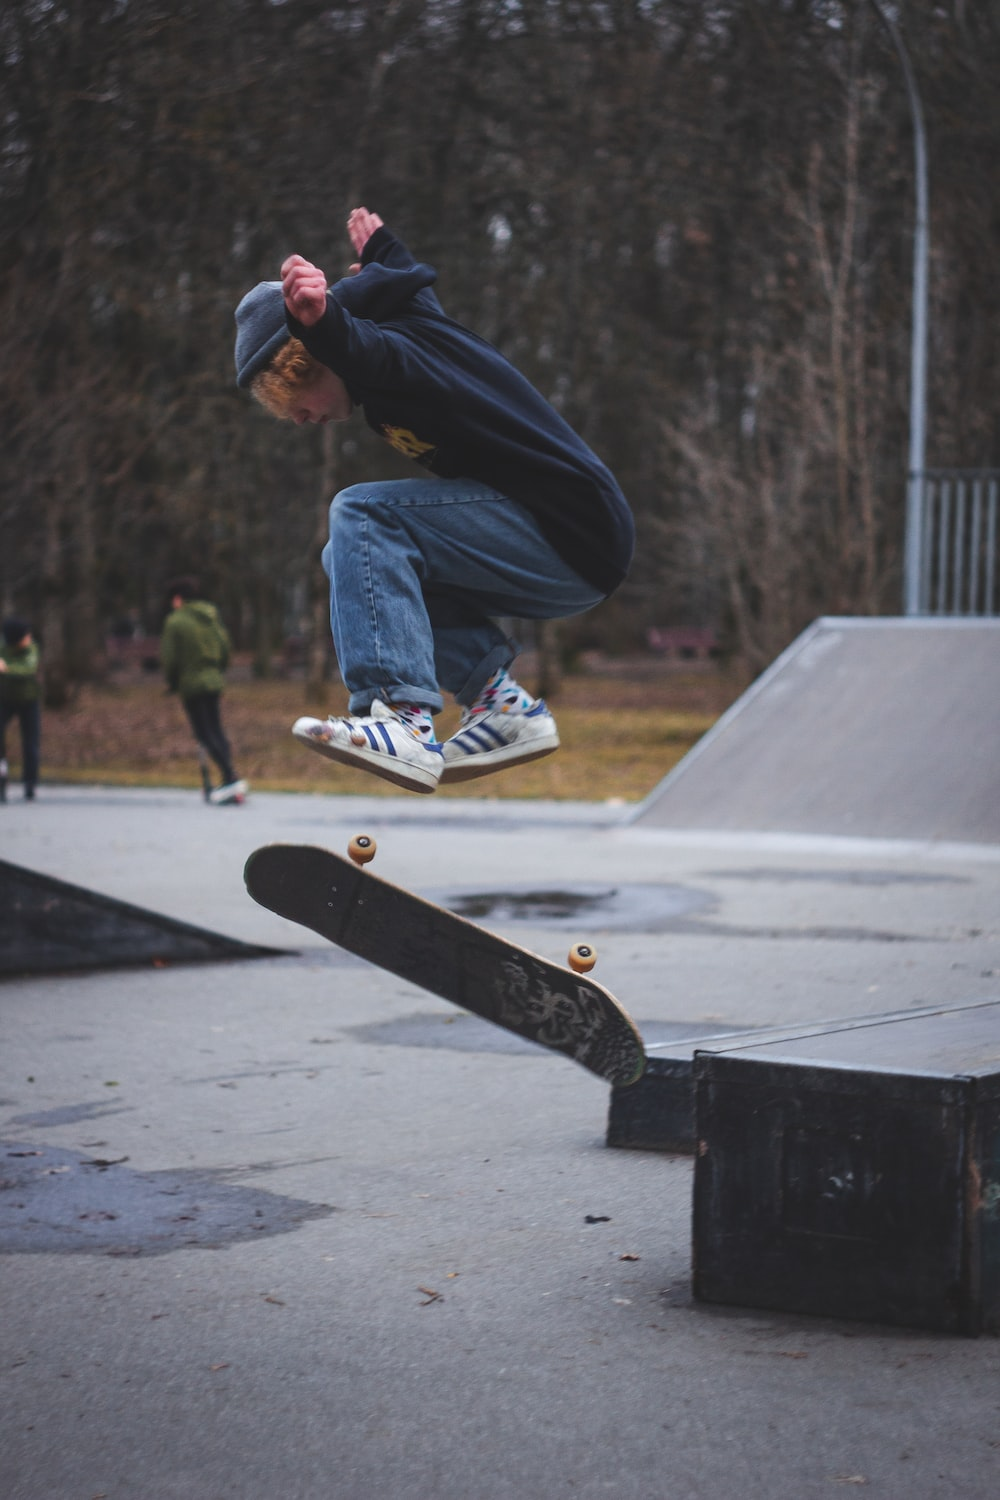 man in black hoodie and blue denim jeans riding skateboard during daytime